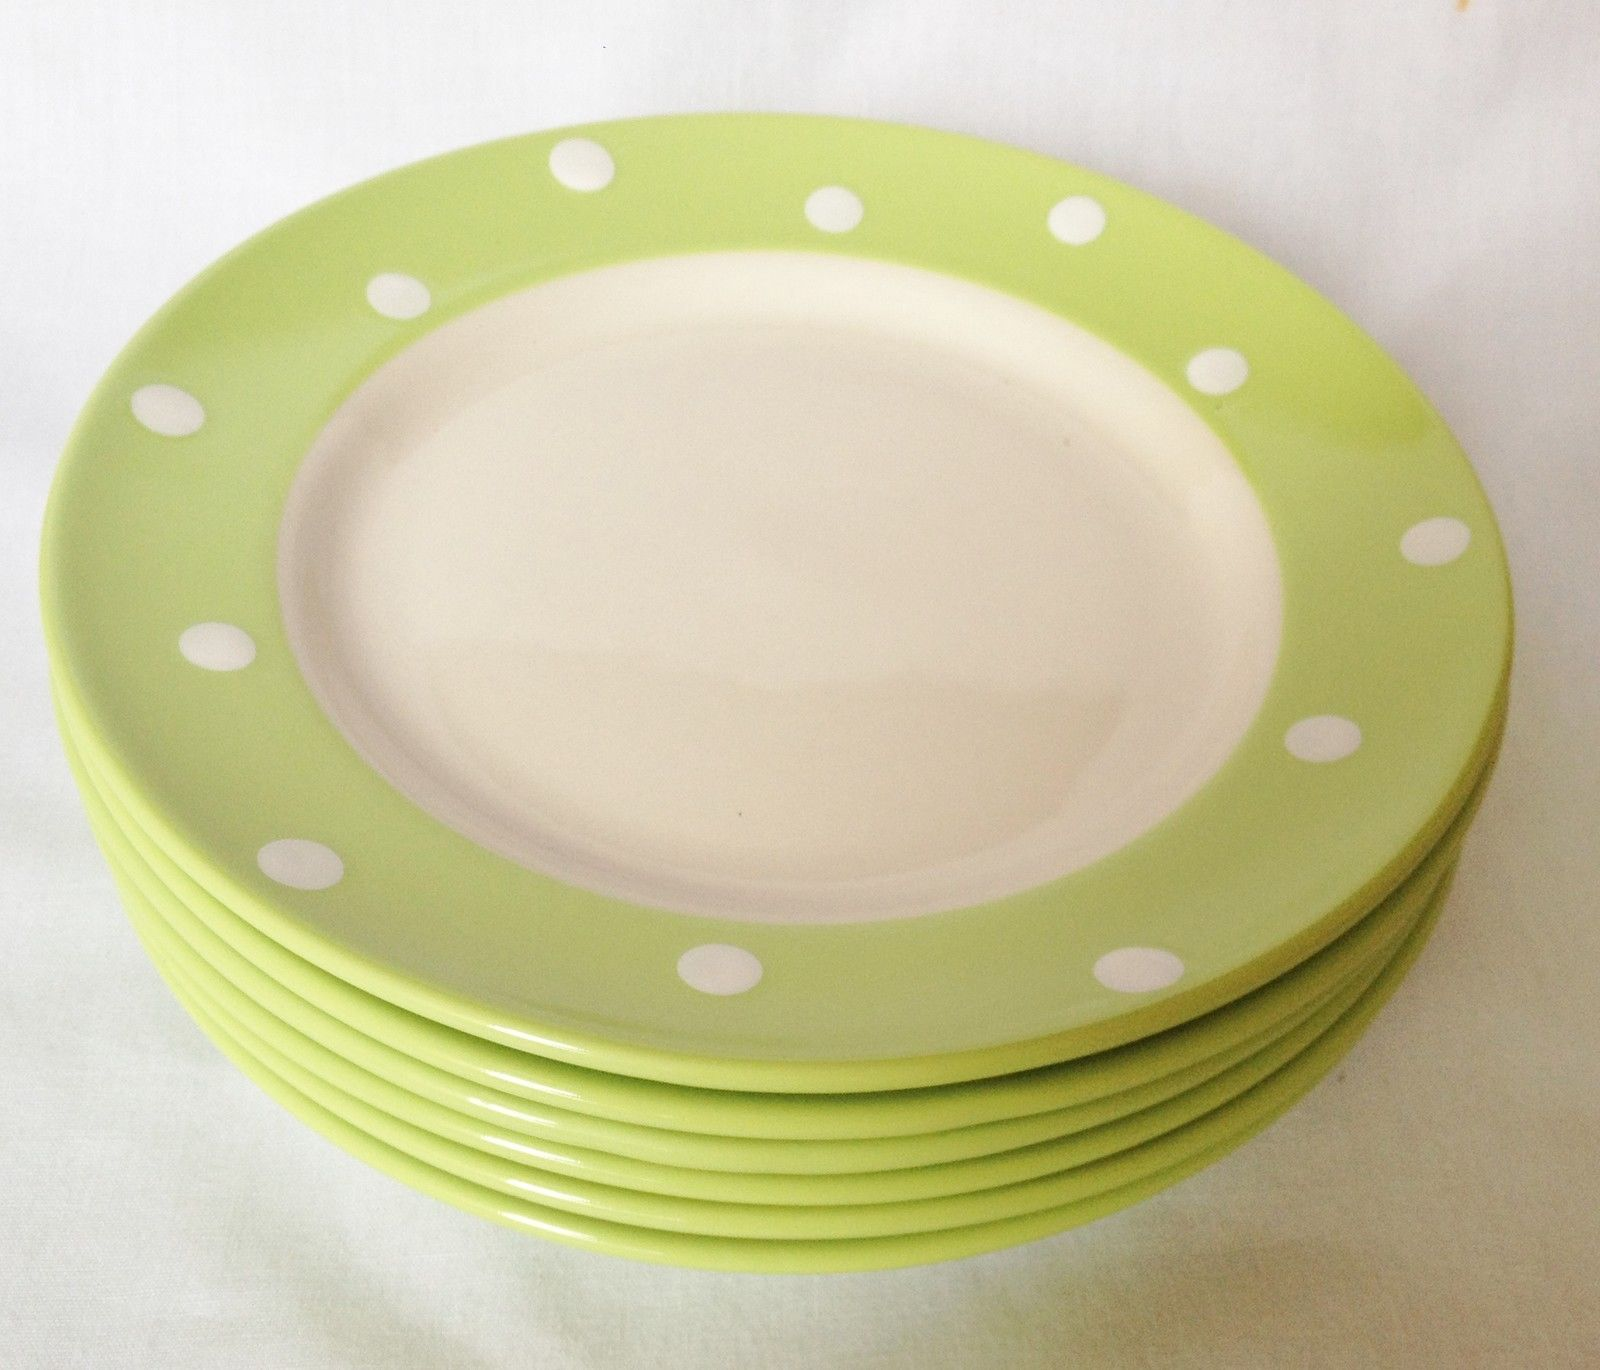 Spode Baking Days Green Salad Plates x 6 NEW and USED | eBay ...